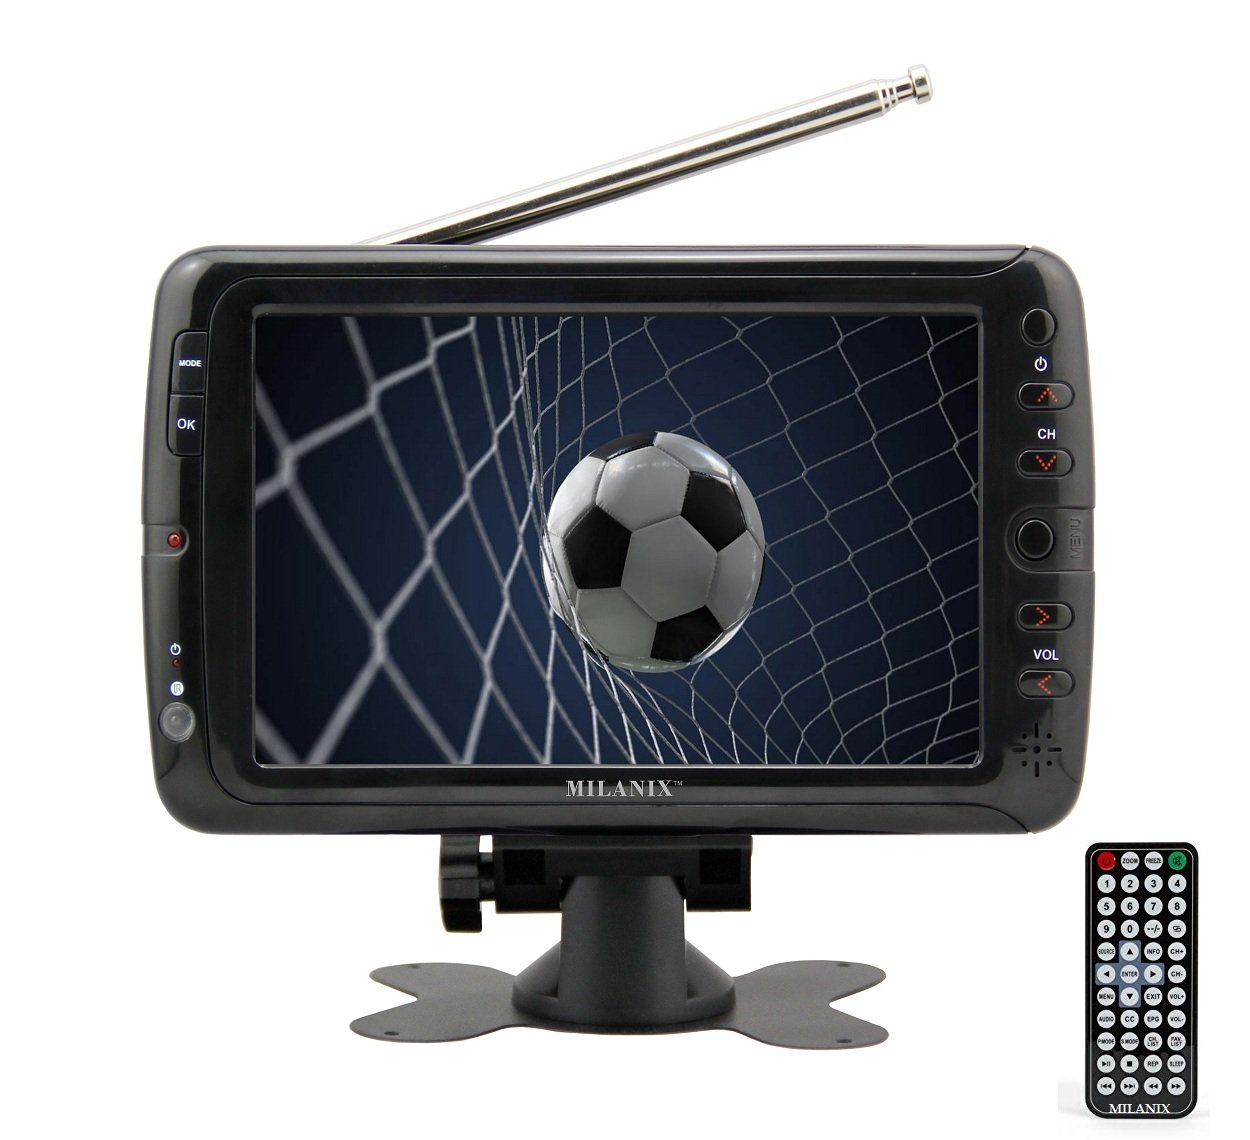 "Milanix MX7 7"" Portable Widescreen LCD TV with Detachable Antennas, USB/SD Card Slot, Built in Digital Tuner, and AV Inputs"